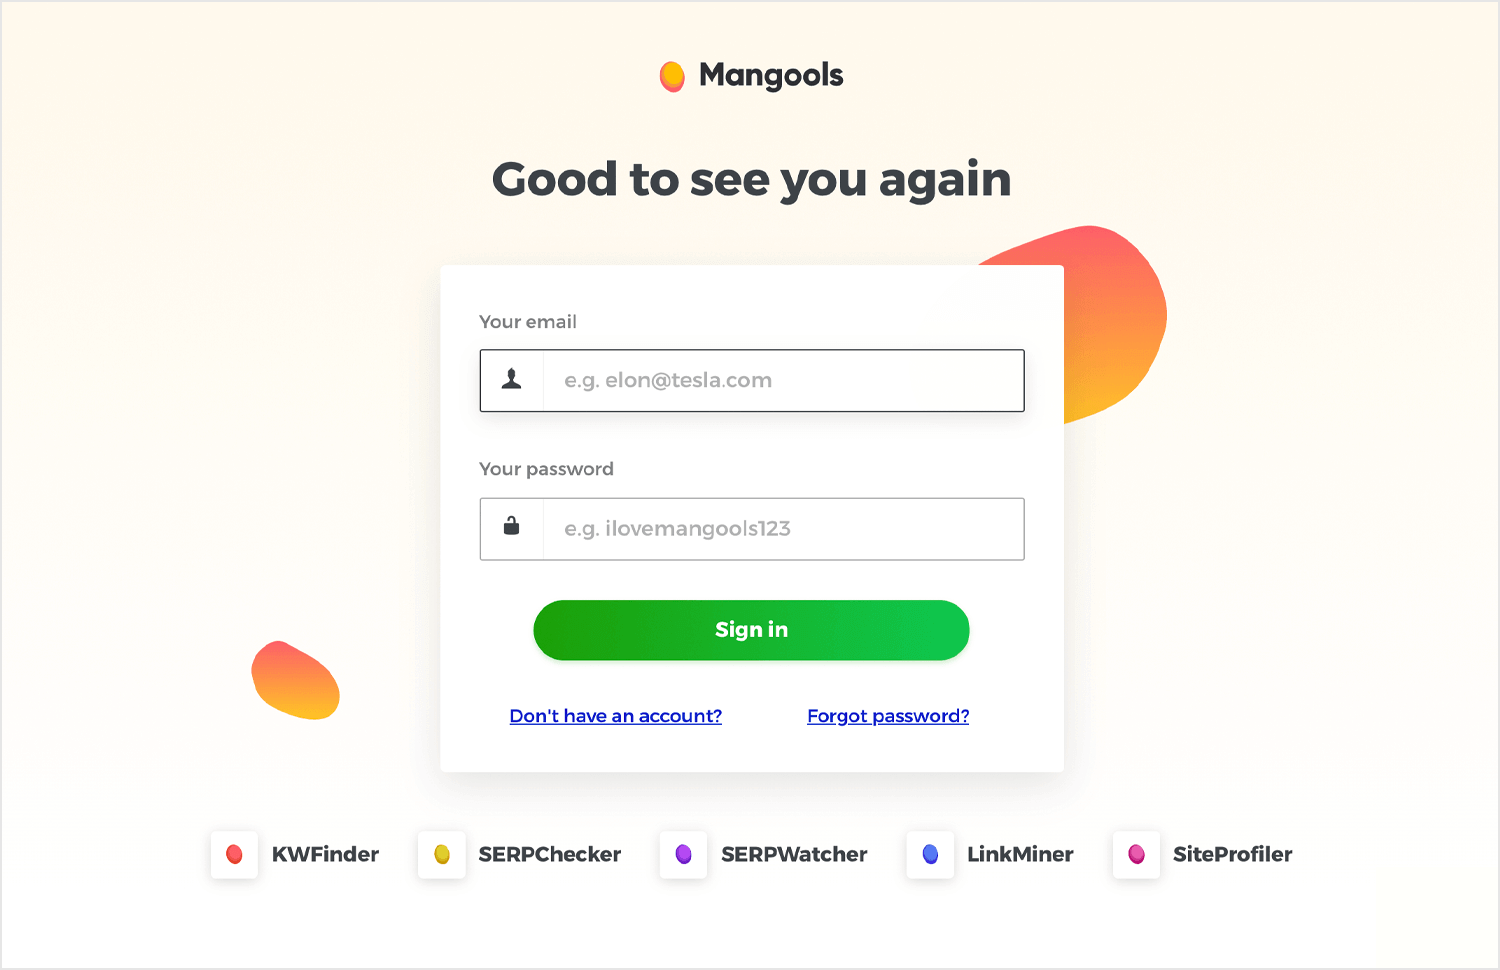 mangools login form